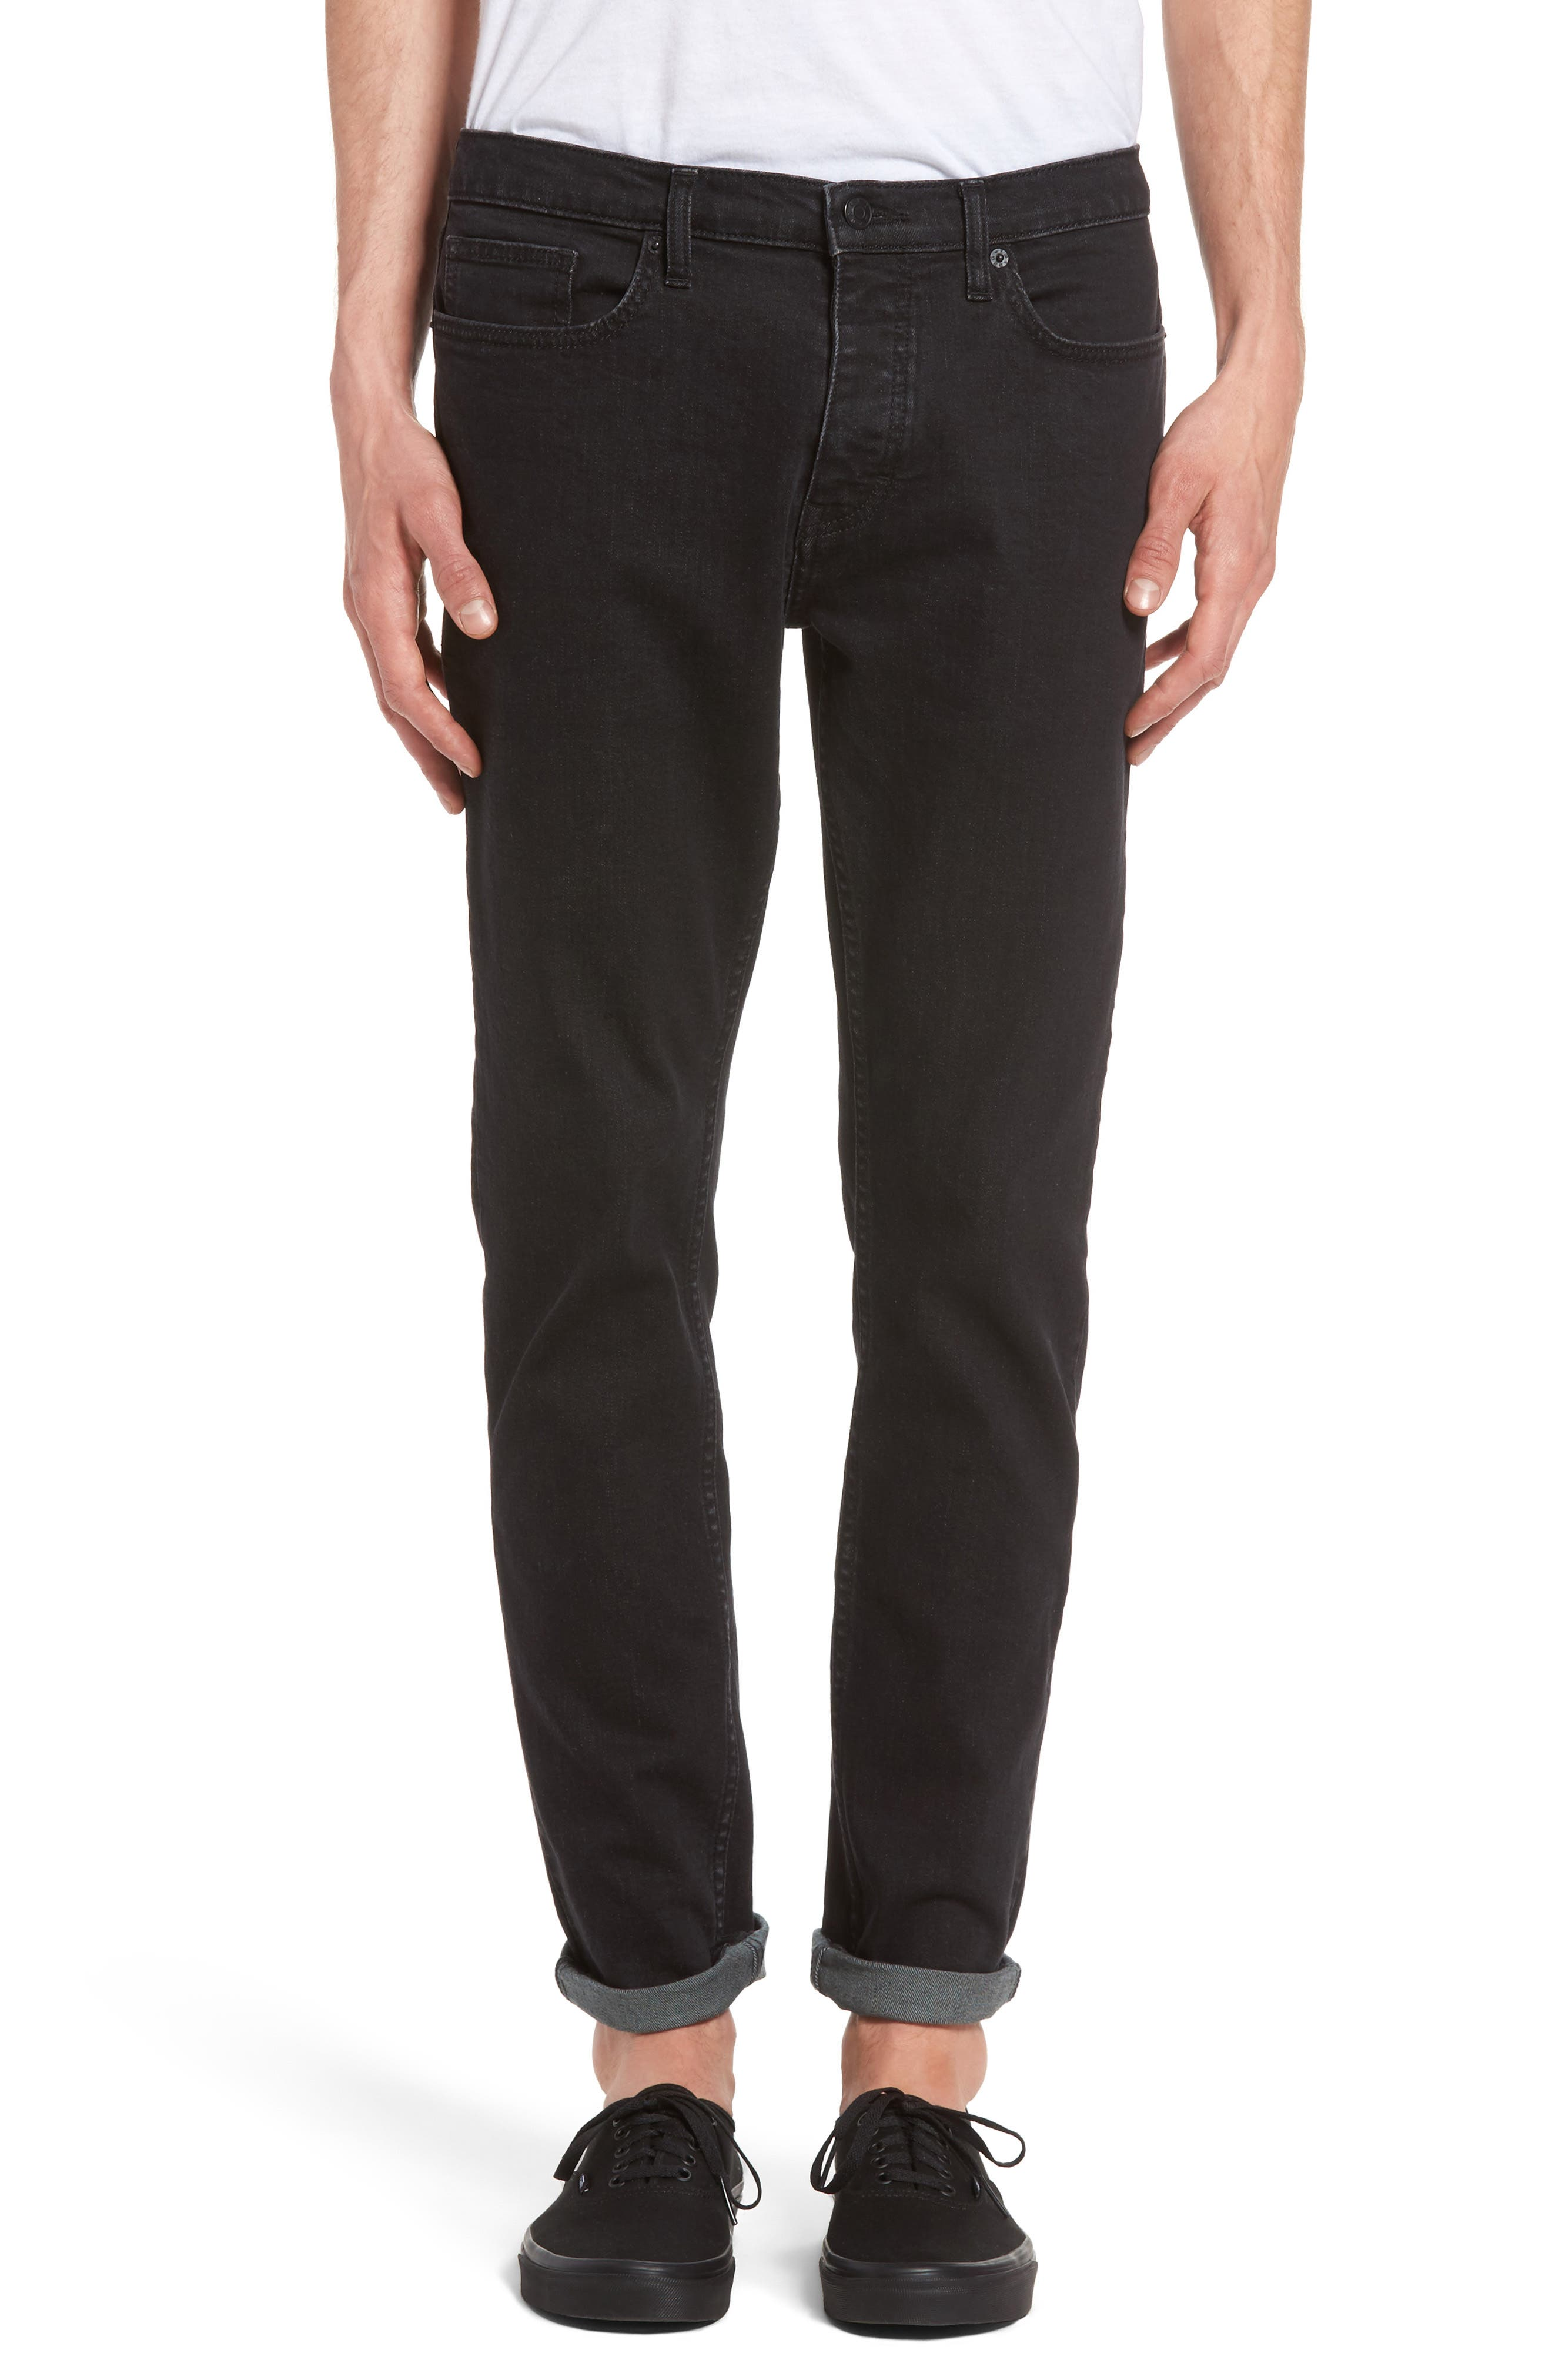 Alternate Image 1 Selected - Topman Washed Slim Fit Jeans